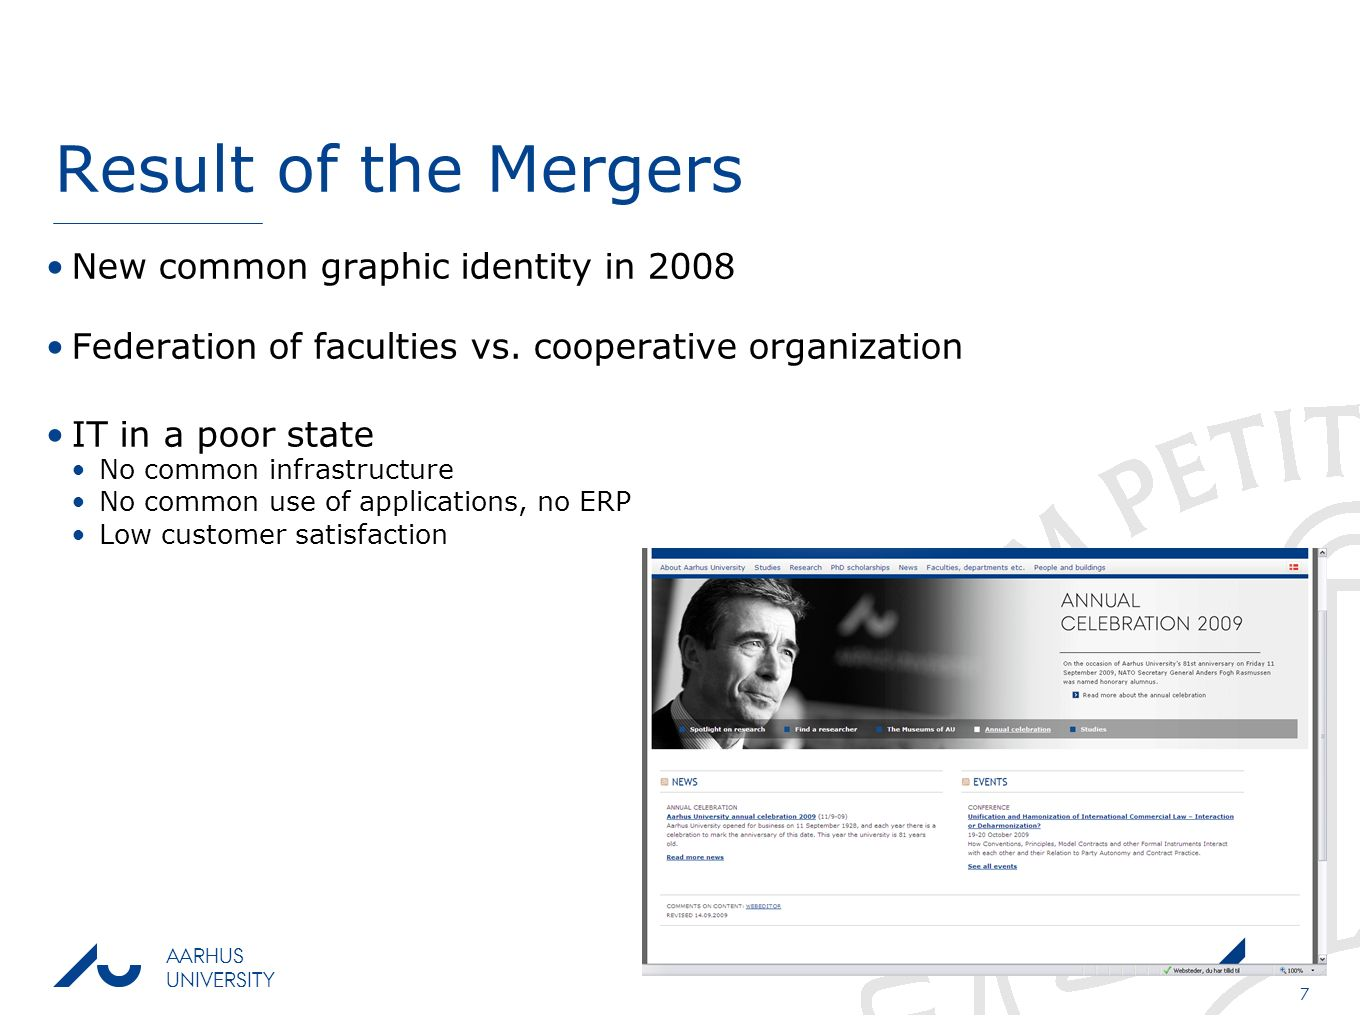 NORDUnet conferenceSeptember 17, 2009 AARHUS UNIVERSITY 7 Result of the Mergers New common graphic identity in 2008 Federation of faculties vs.